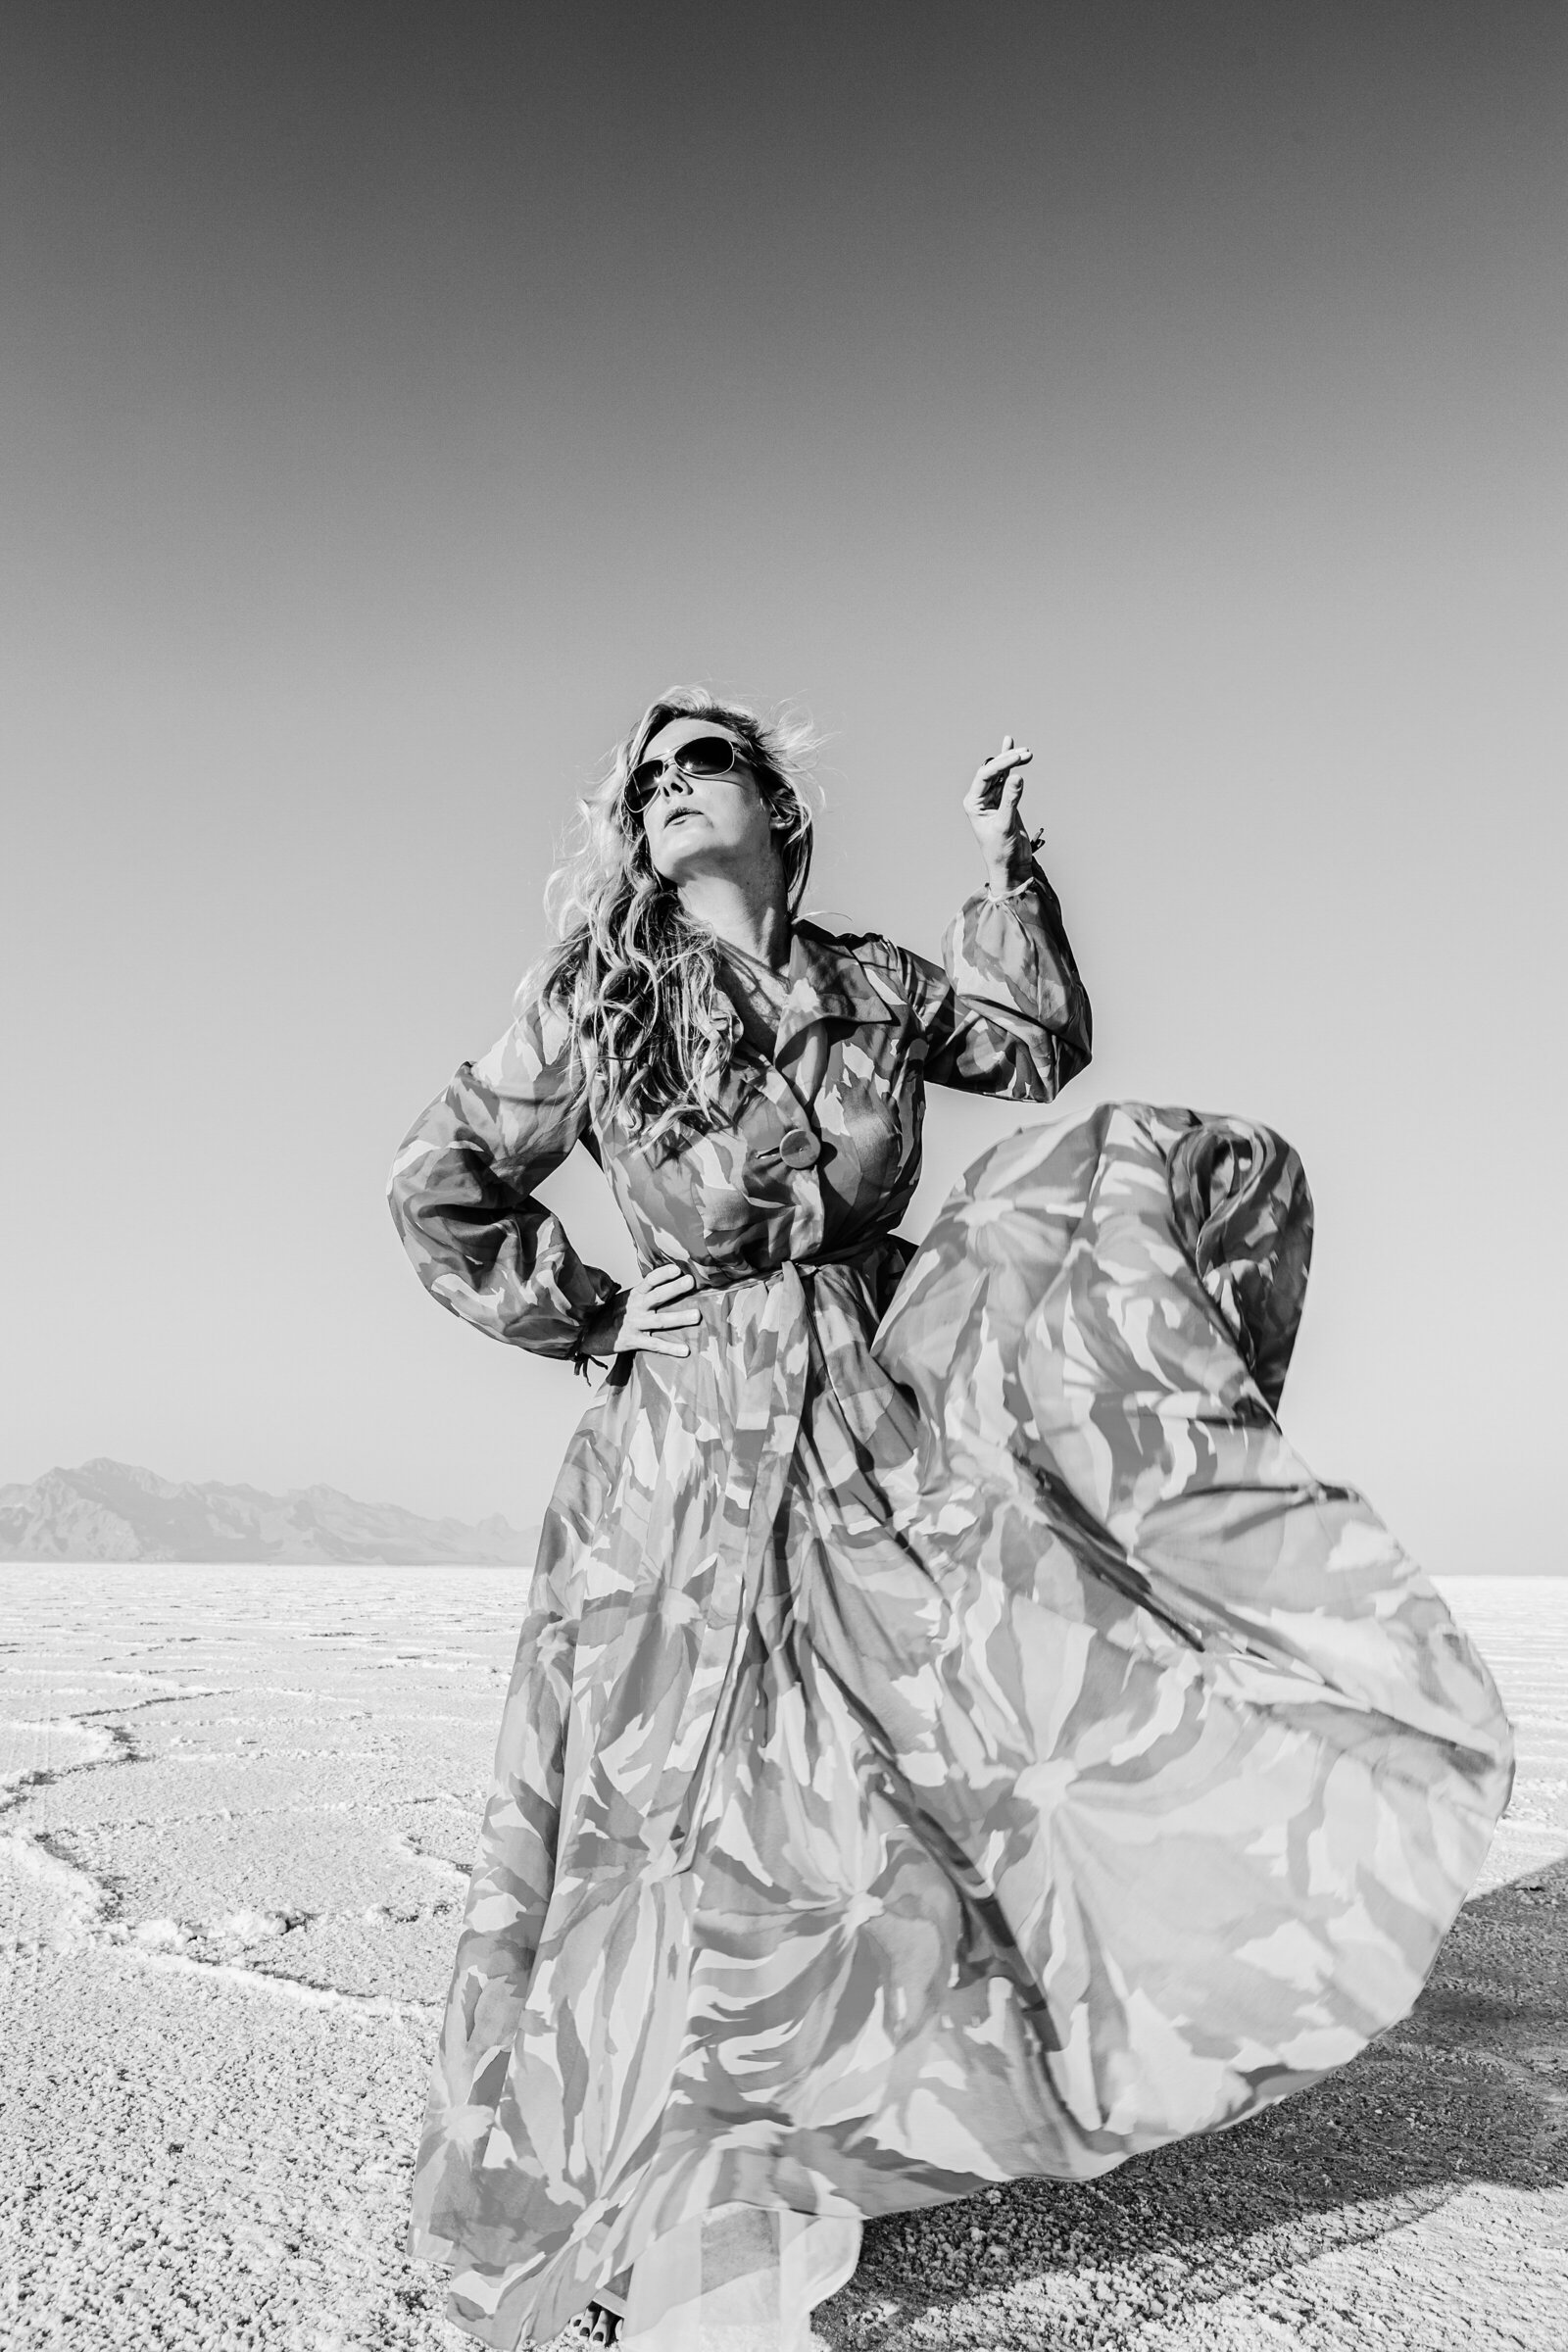 Lisa-Staff-Photographer-Salt-Flats-1139